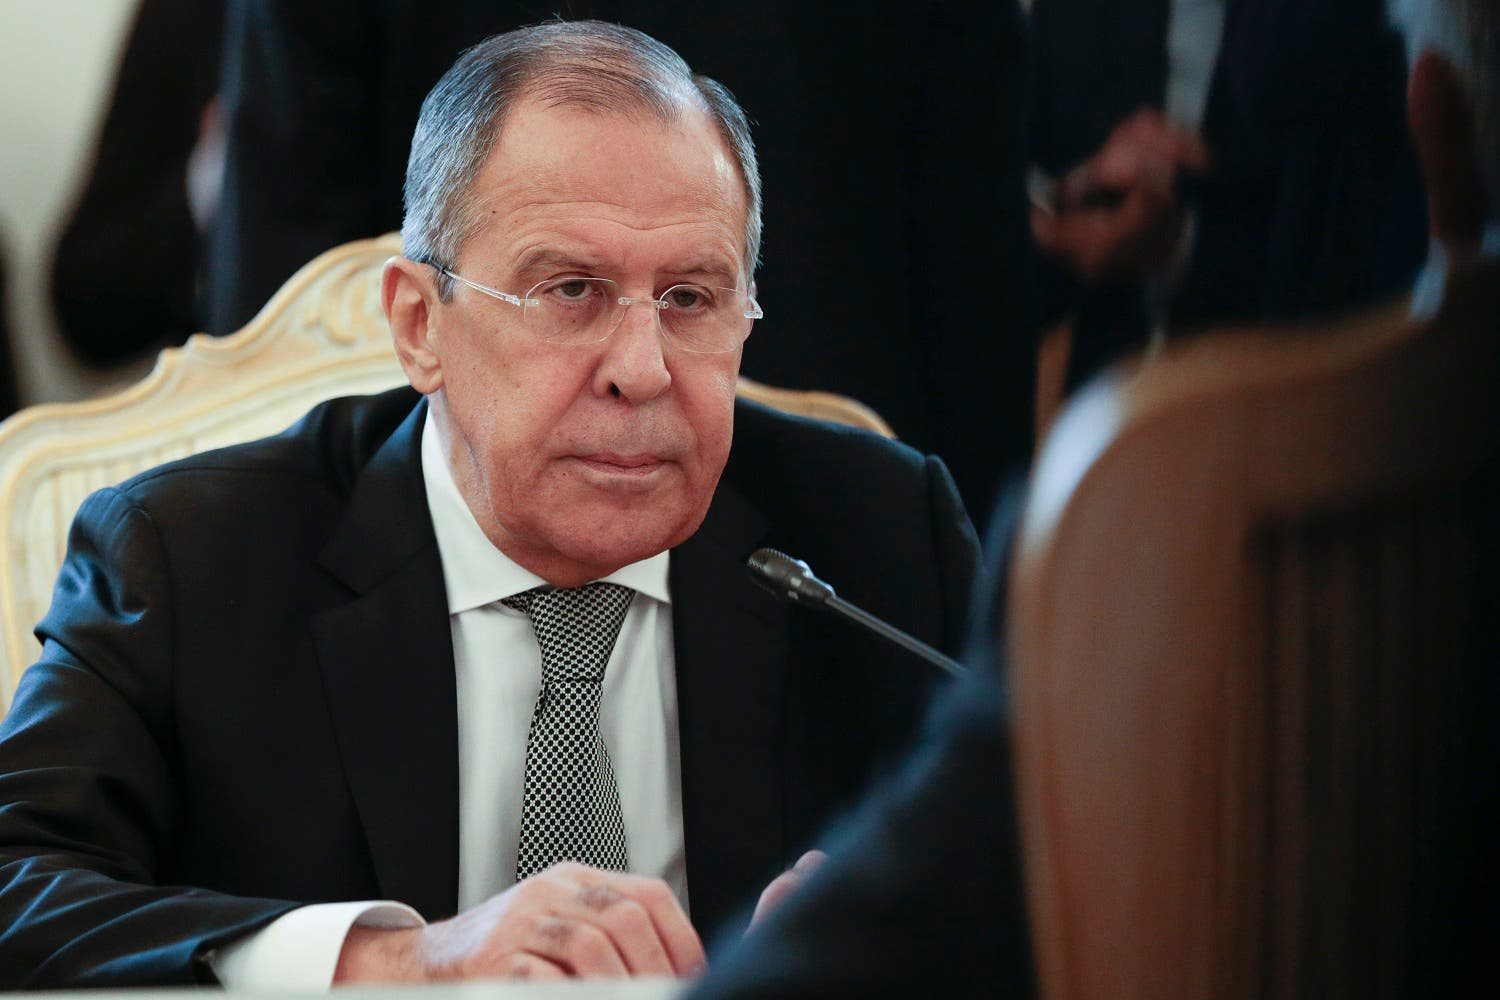 Sergei Lavrov listens to Rex Tillerson during their talks in Moscow on April 12, 2017. (AP)